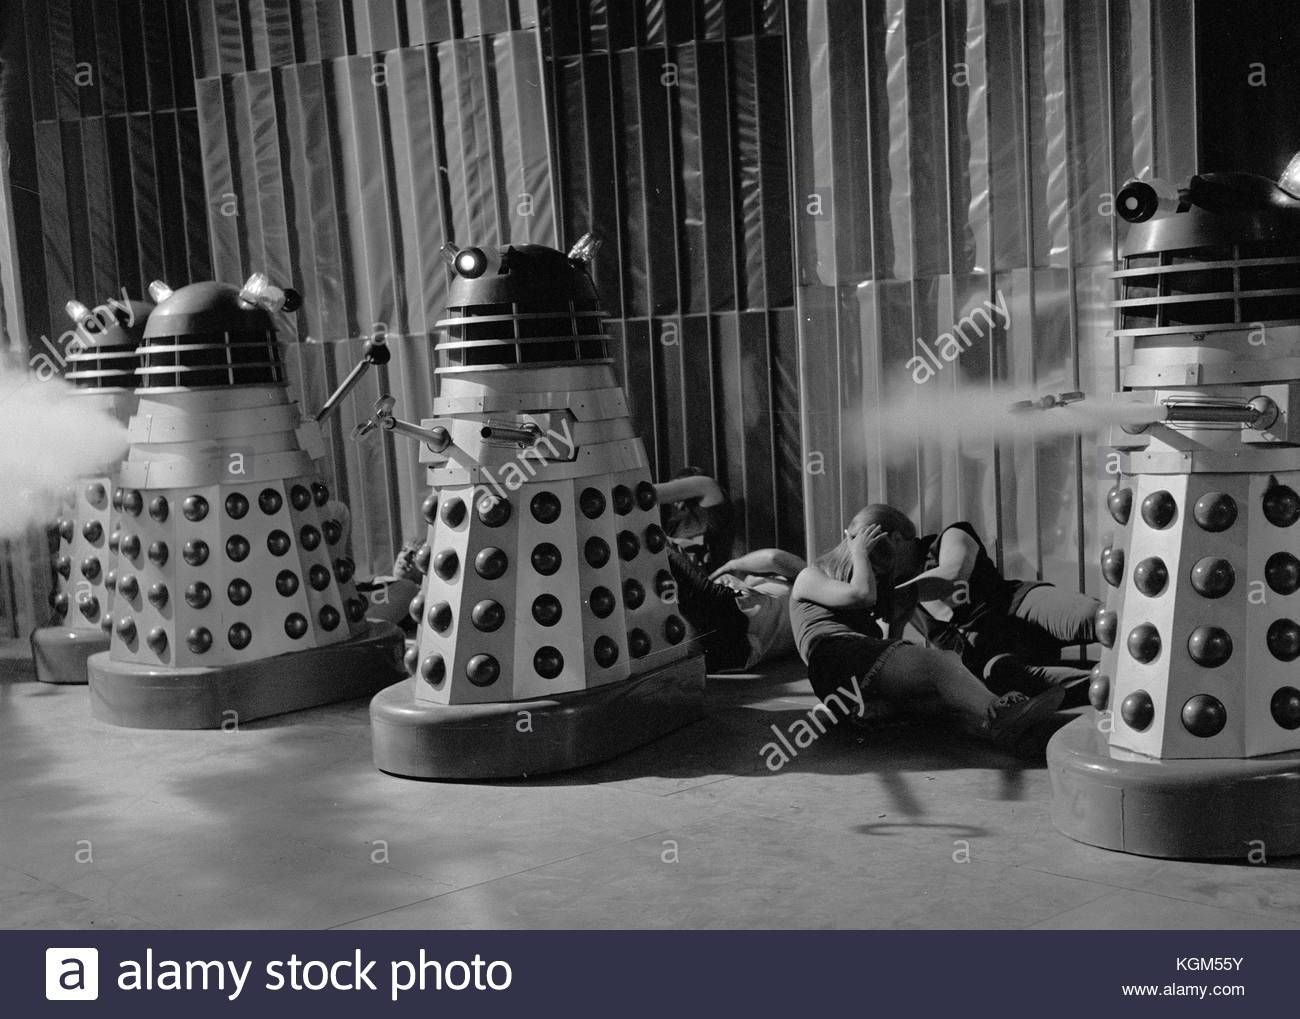 dr-who-and-the-daleks-1966-date-1965-KGM55Y.jpg